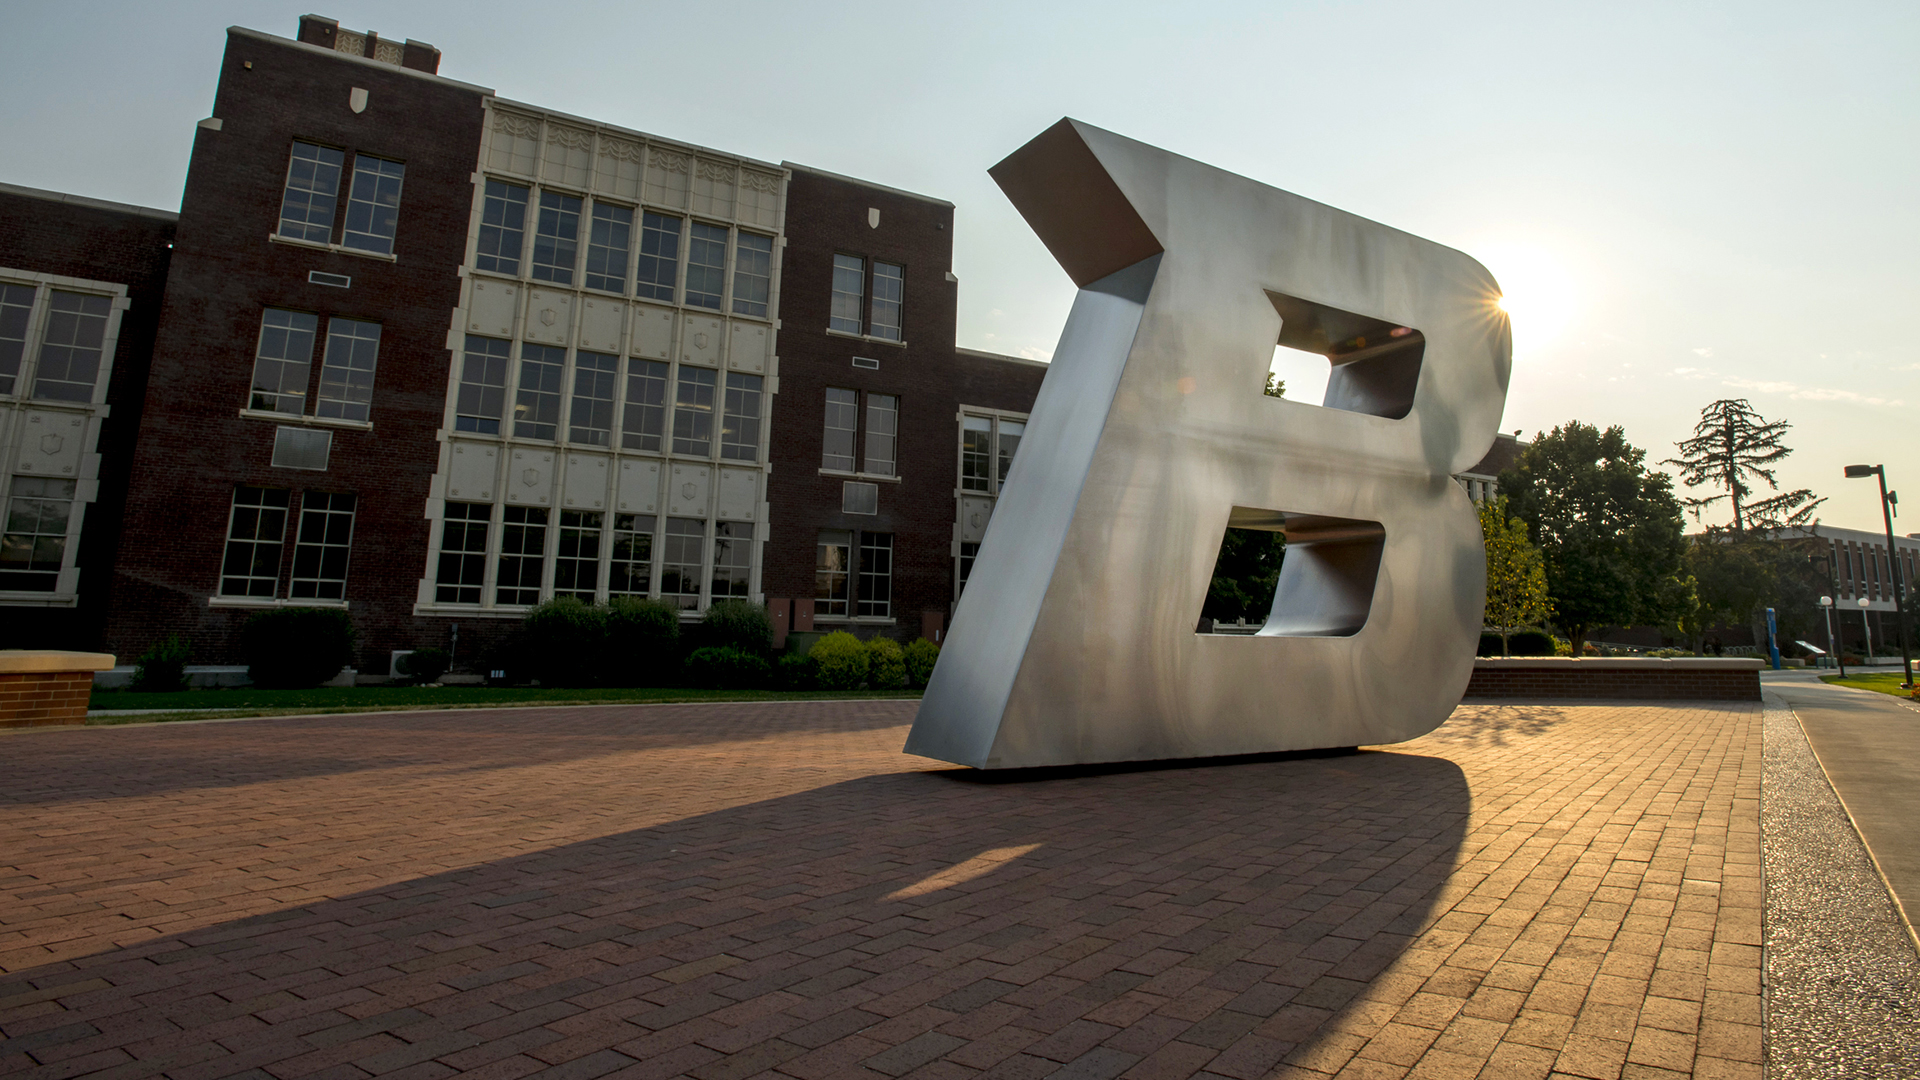 B sculpture, Administration Plaza